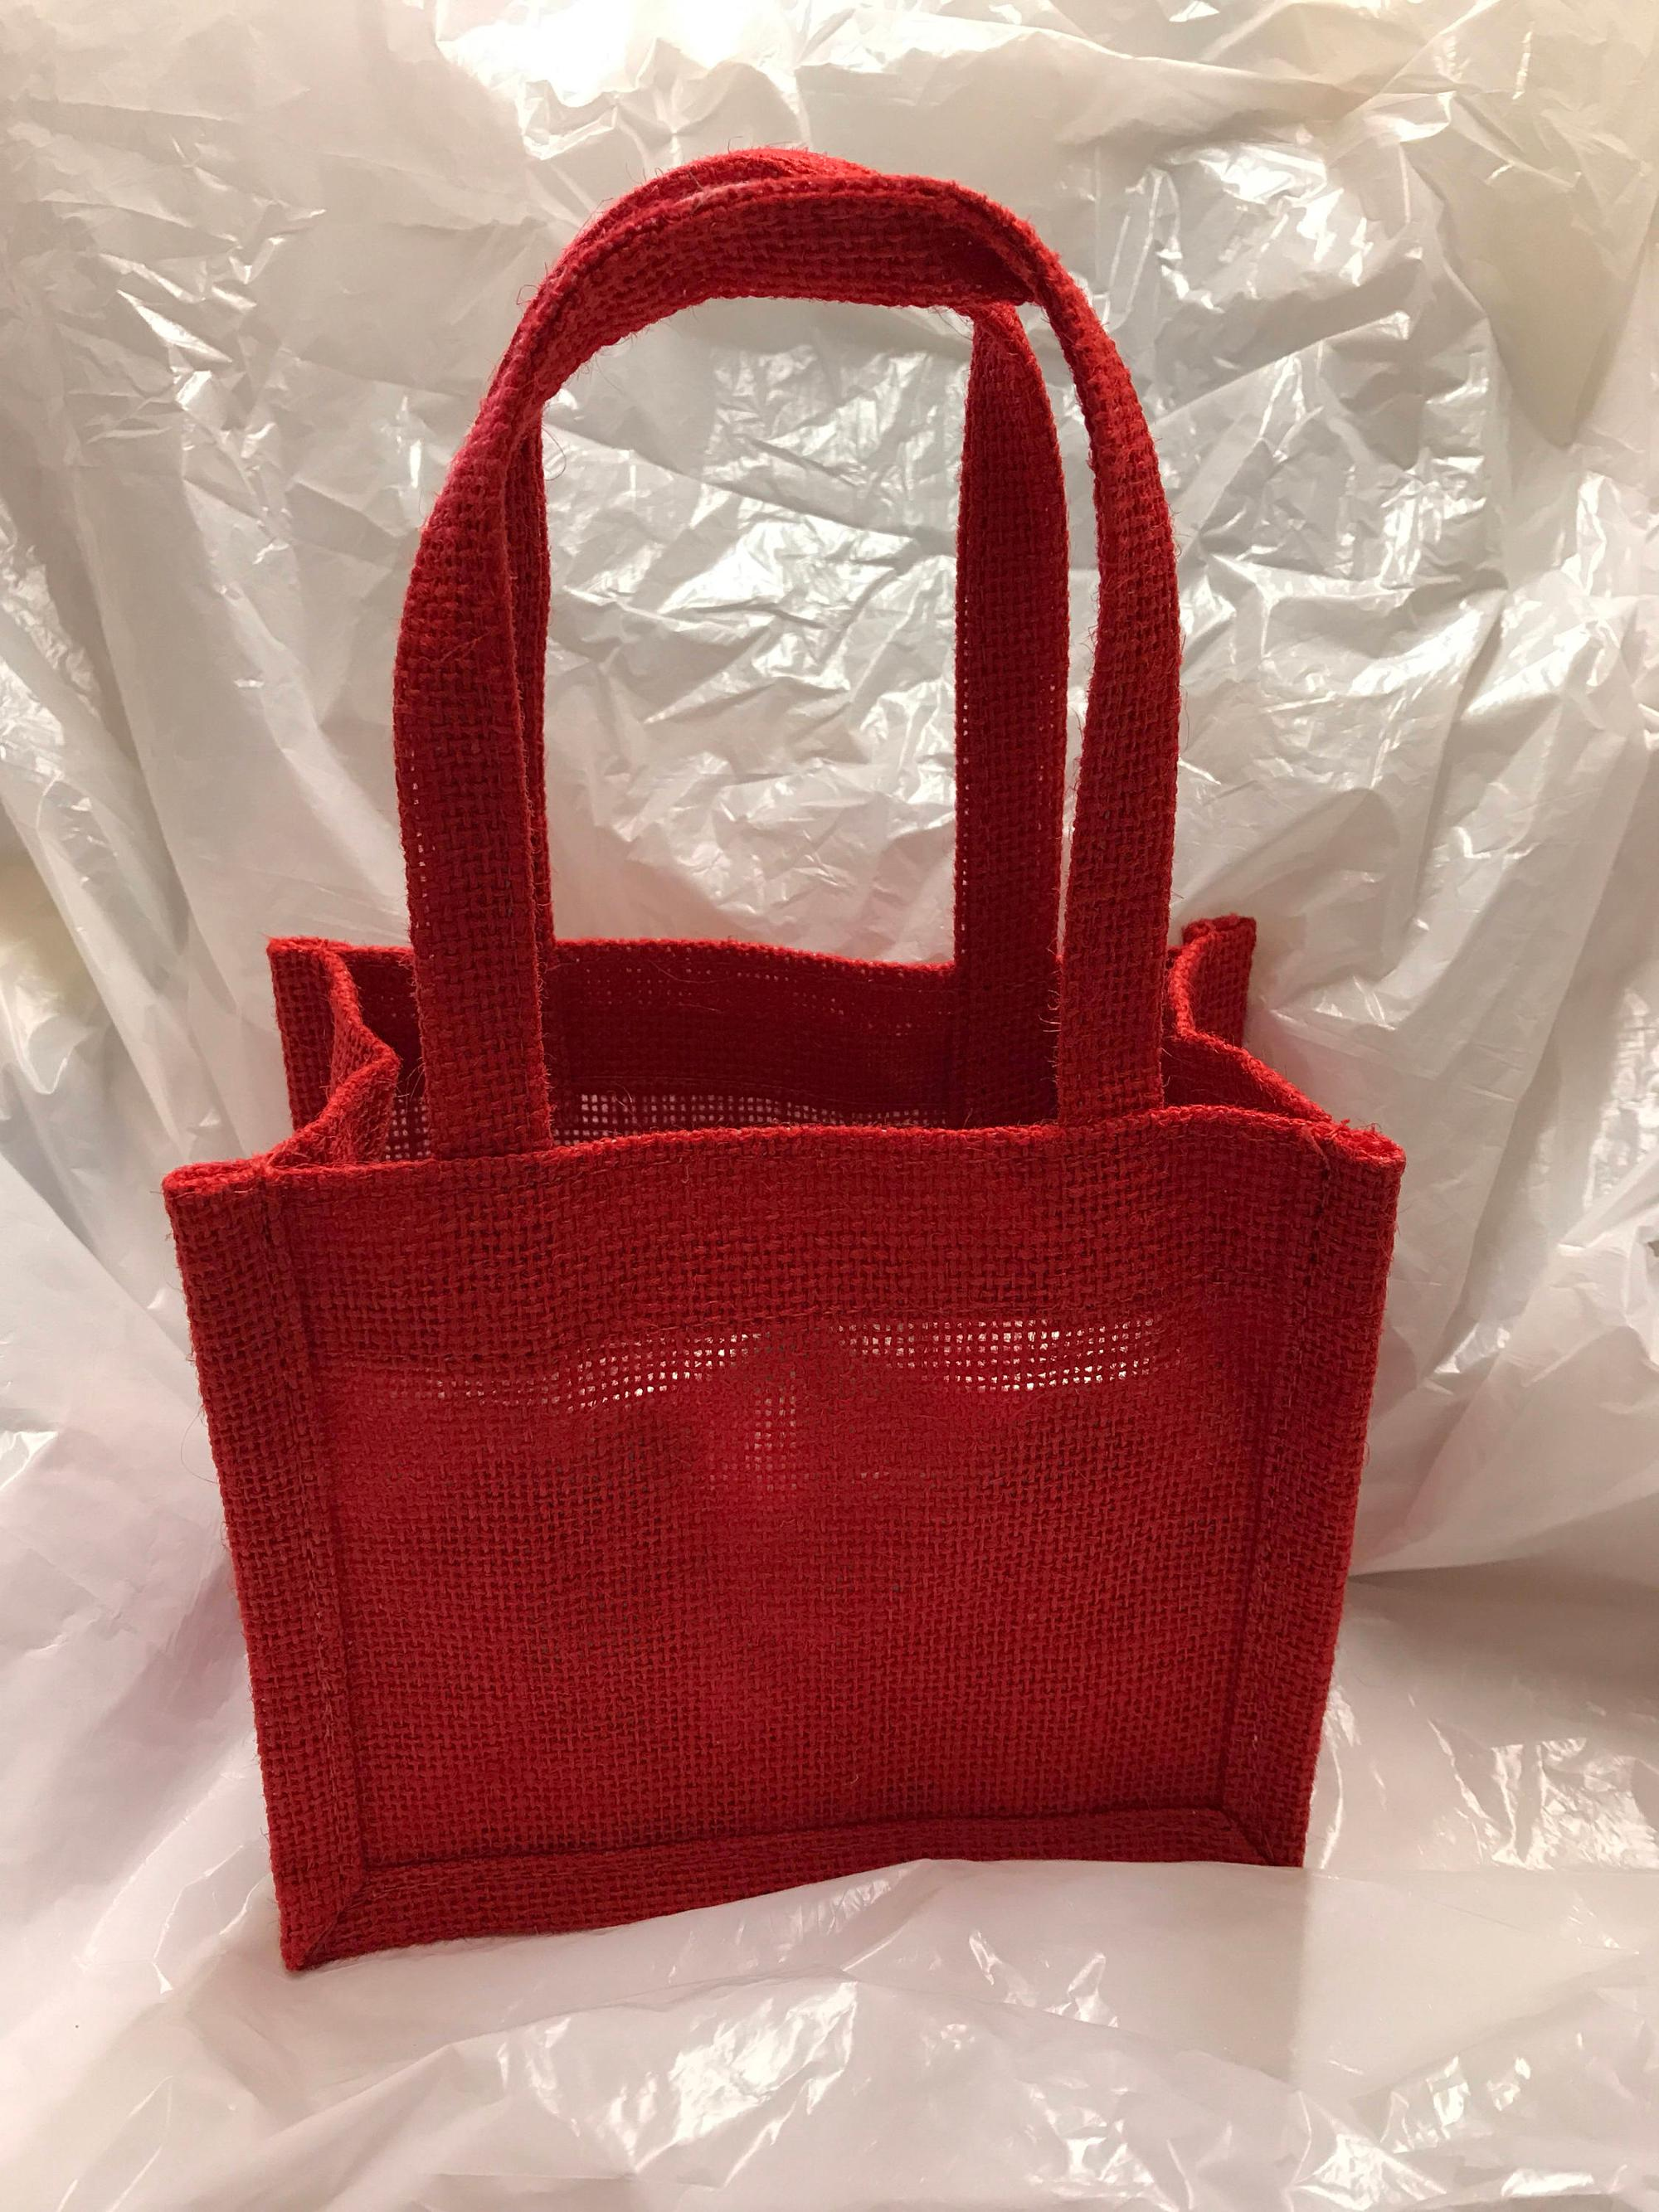 Handmade wedding favor red jute wine jam gift tote bag